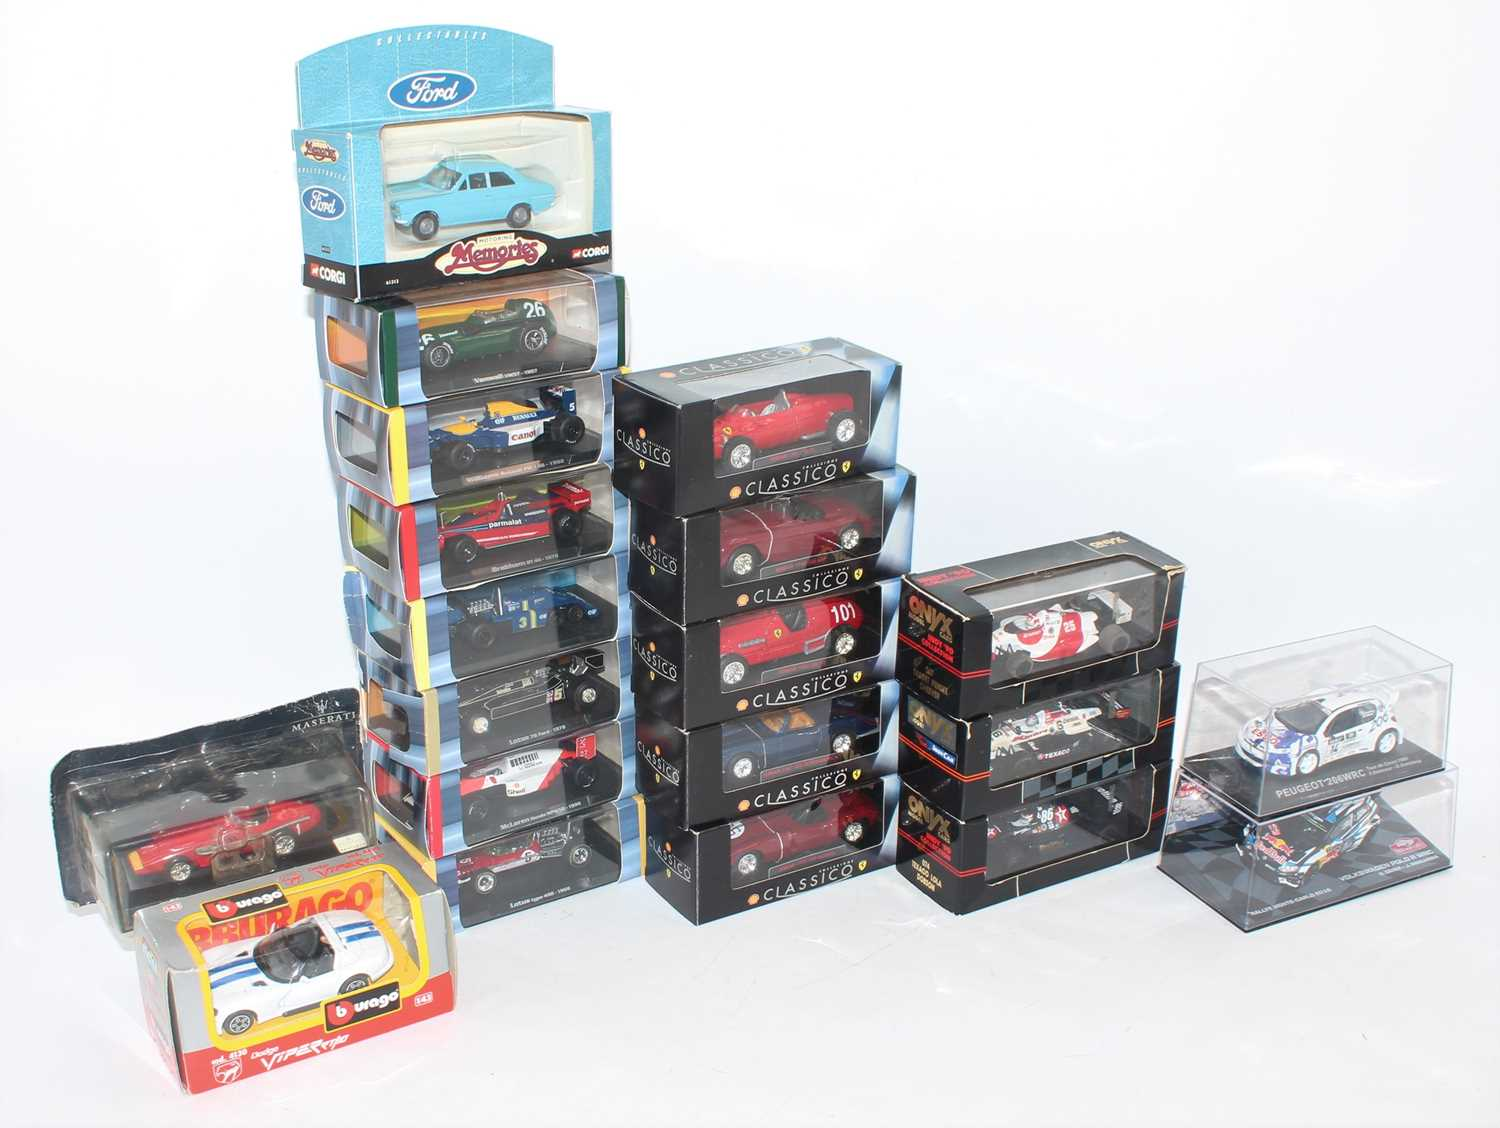 One tray containing a quantity of various of 1:43 diecast formula one racing cars and saloons, mixed